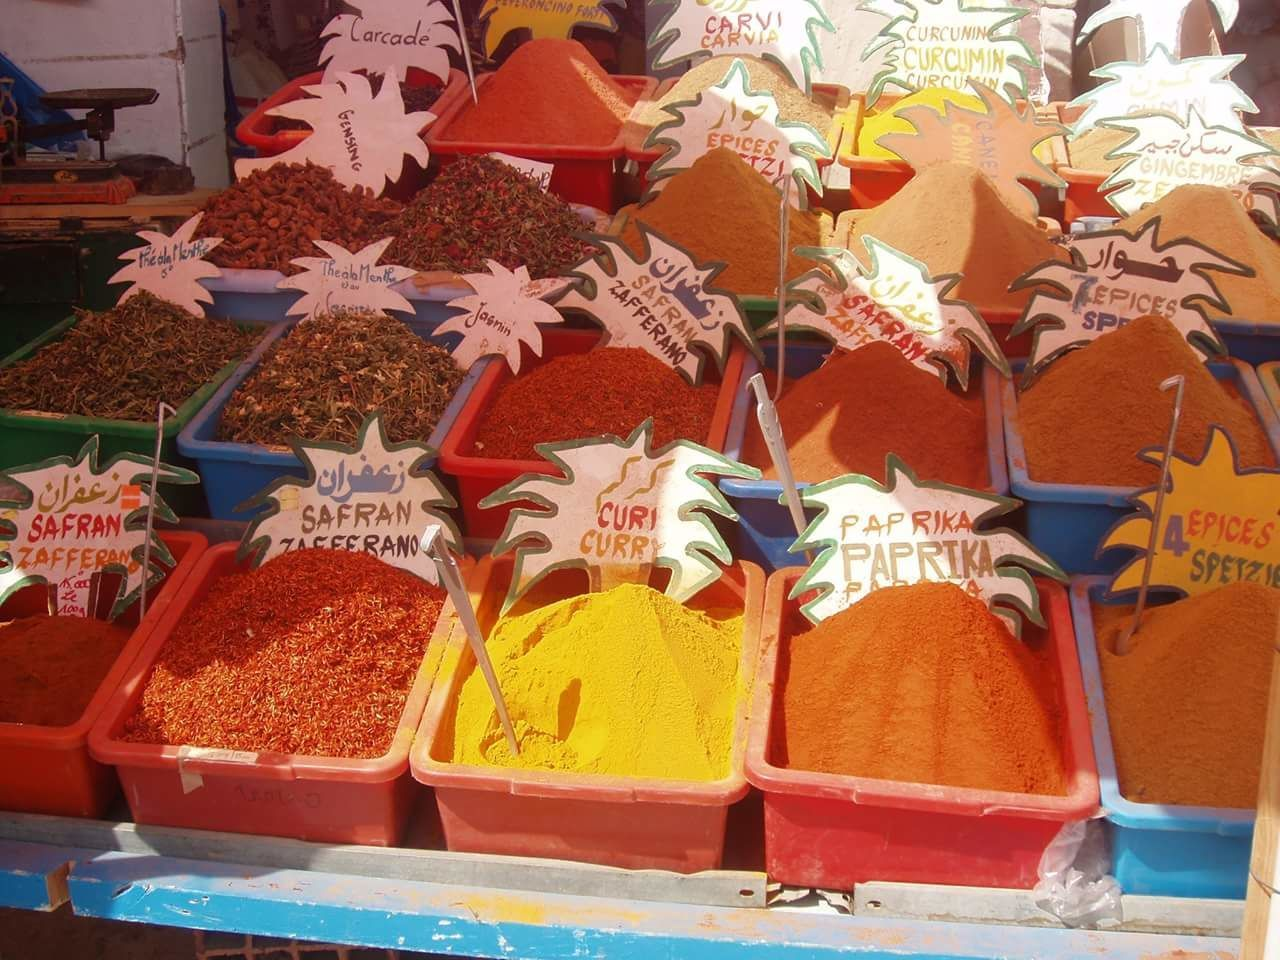 choice, for sale, variation, retail, price tag, spice, abundance, arrangement, food, market stall, food and drink, market, in a row, freshness, day, text, multi colored, no people, collection, large group of objects, outdoors, healthy eating, close-up